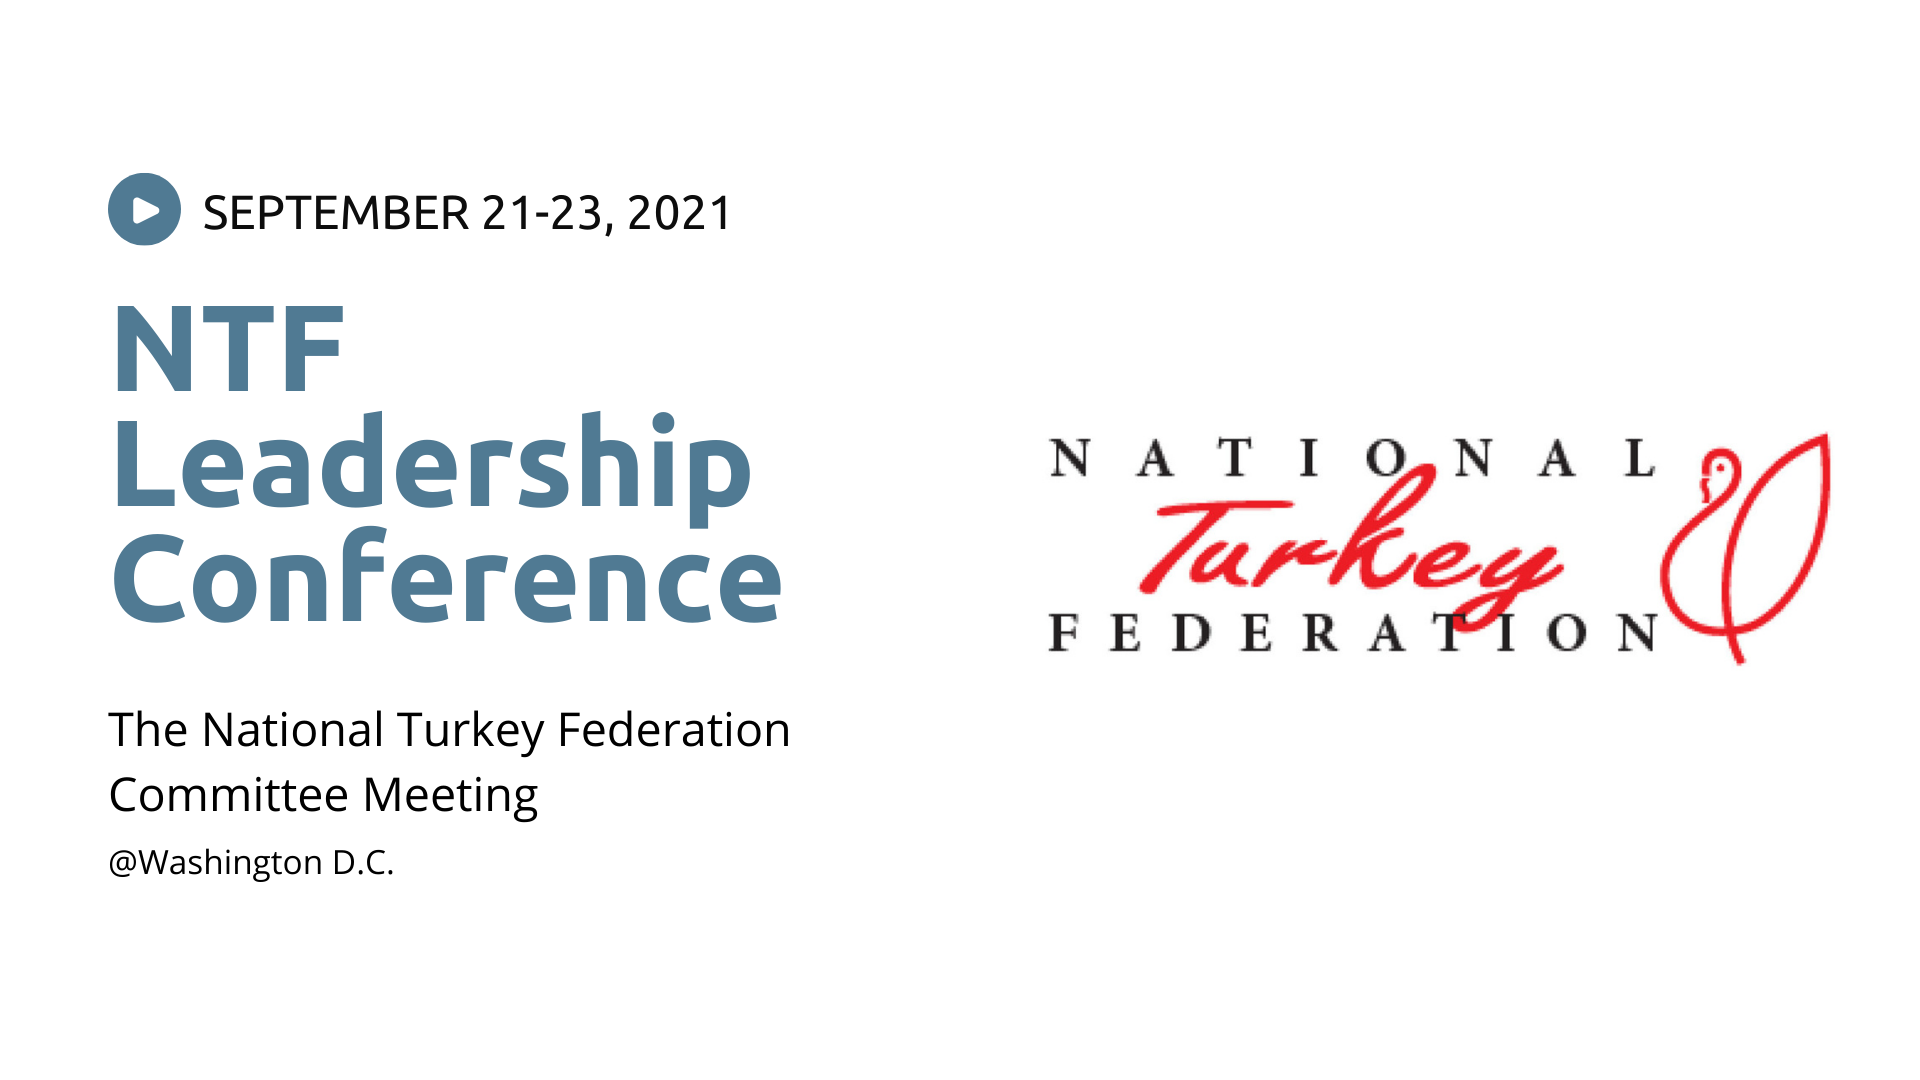 NTF Leadership Conference